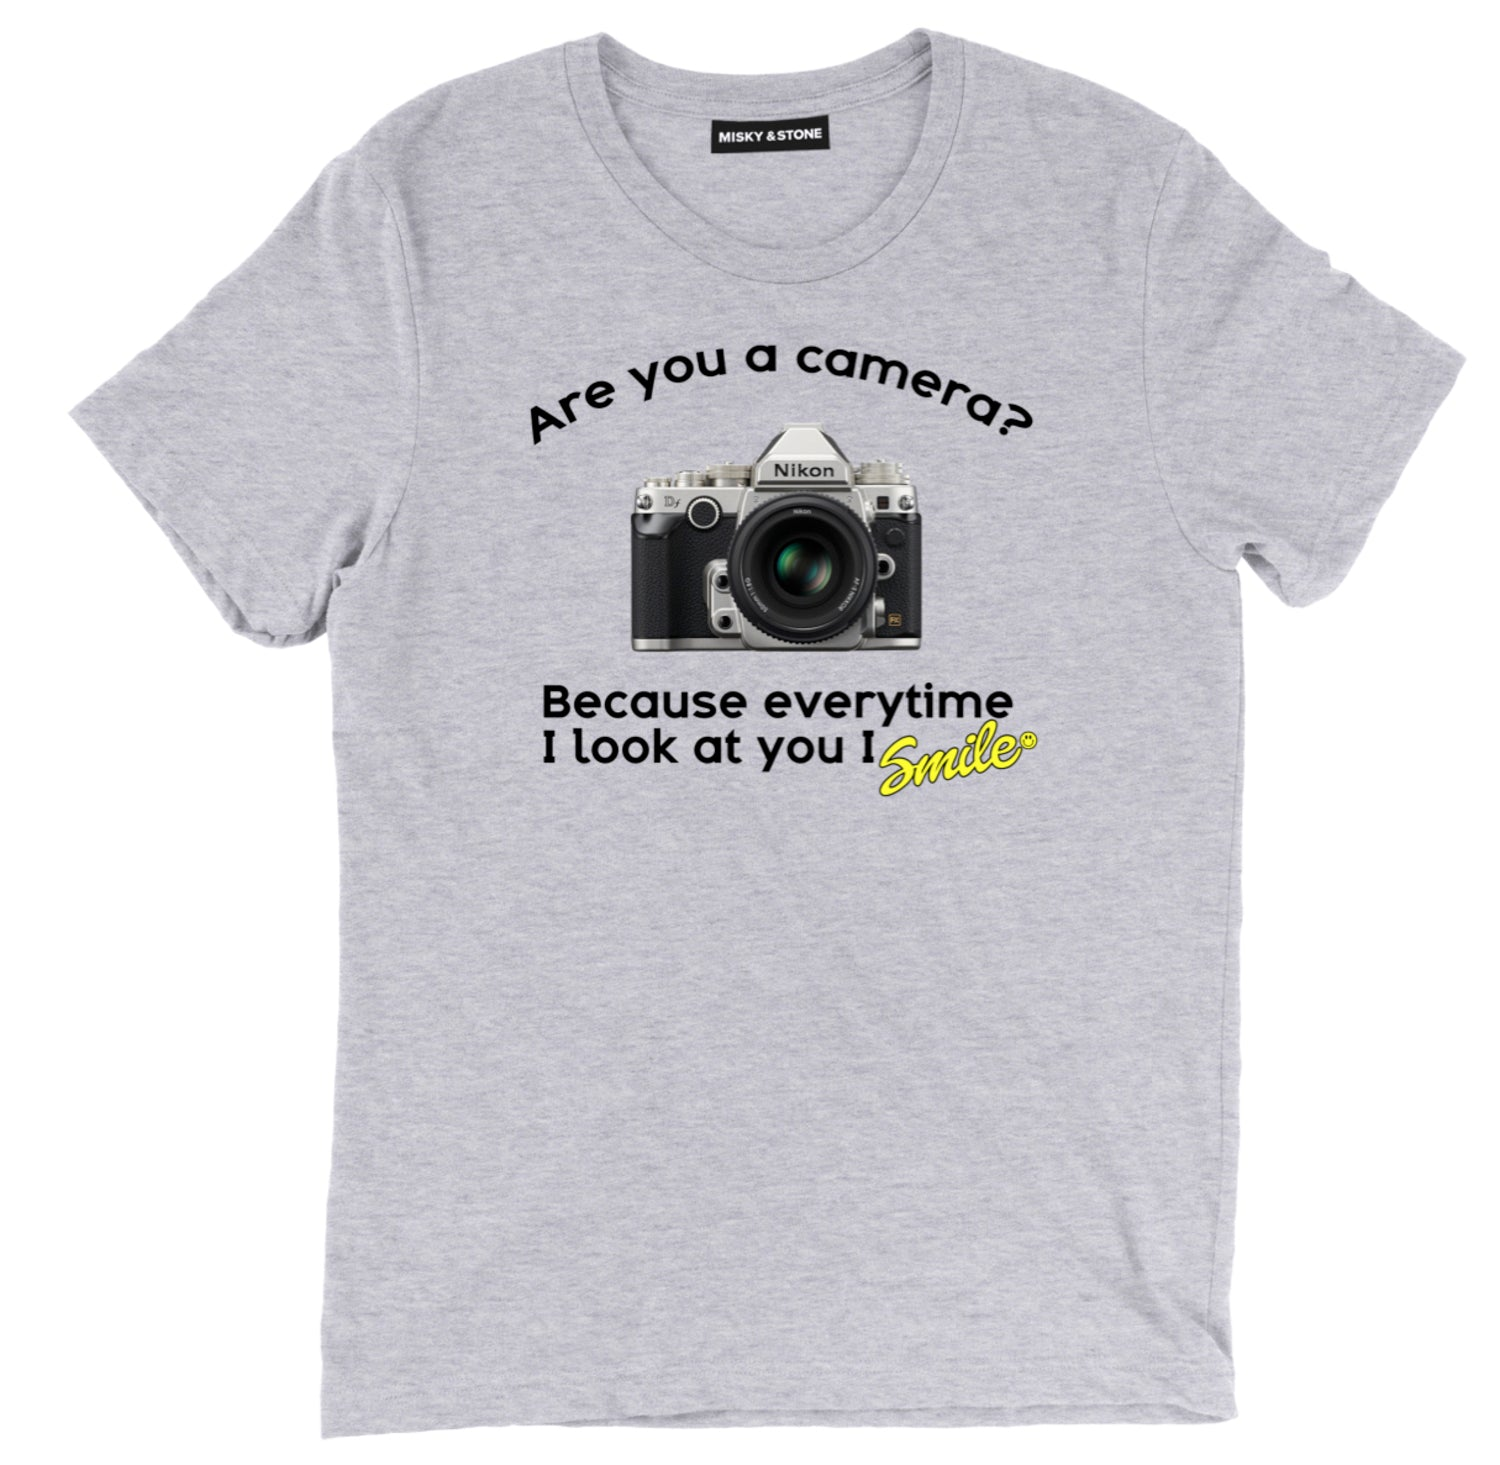 Every Time I Look At You I Smile Tee Shirt